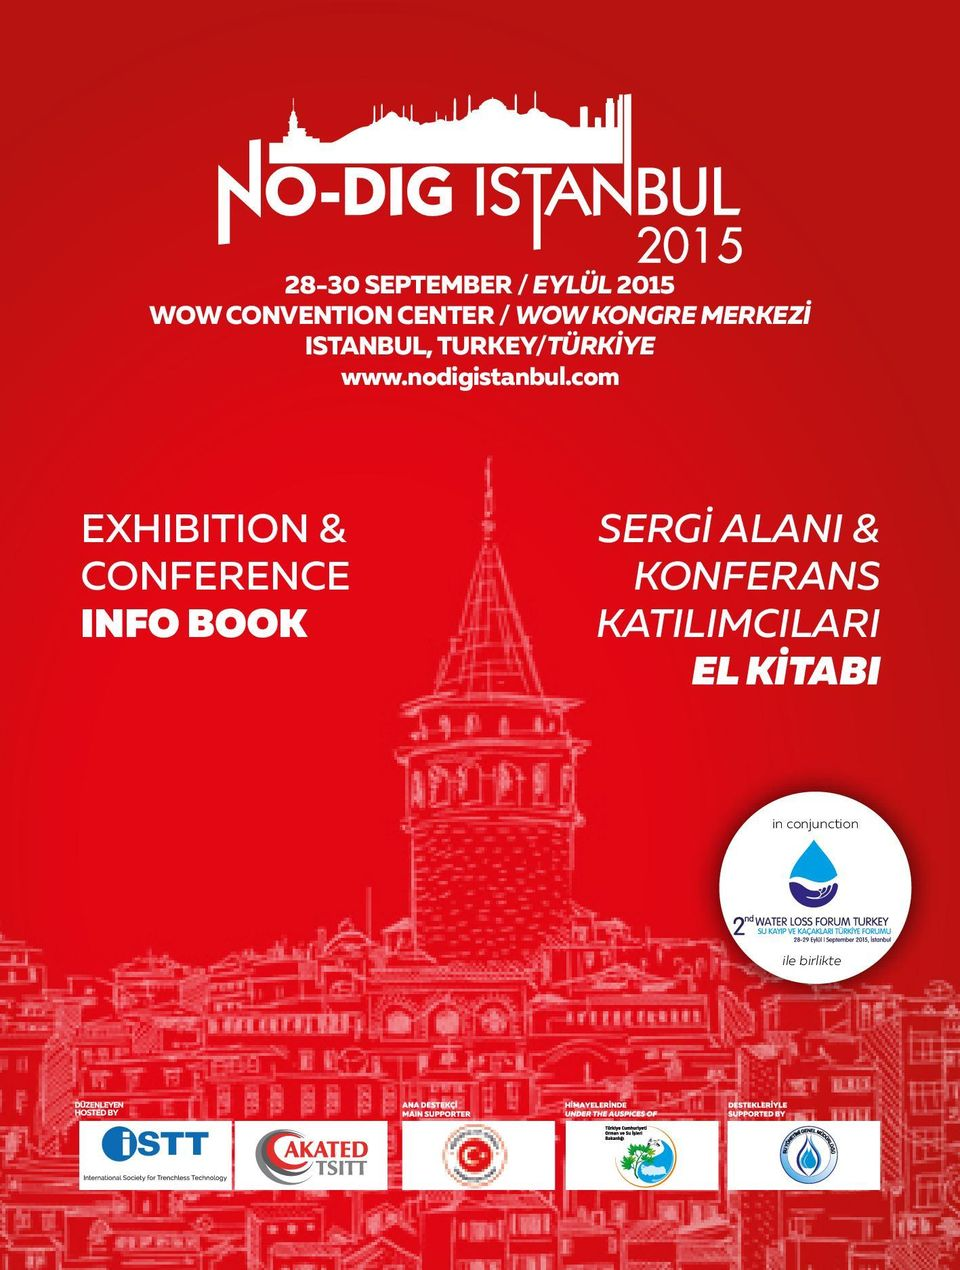 com EXHIBITION & CONFERENCE INFO BOOK SERGİ ALANI &